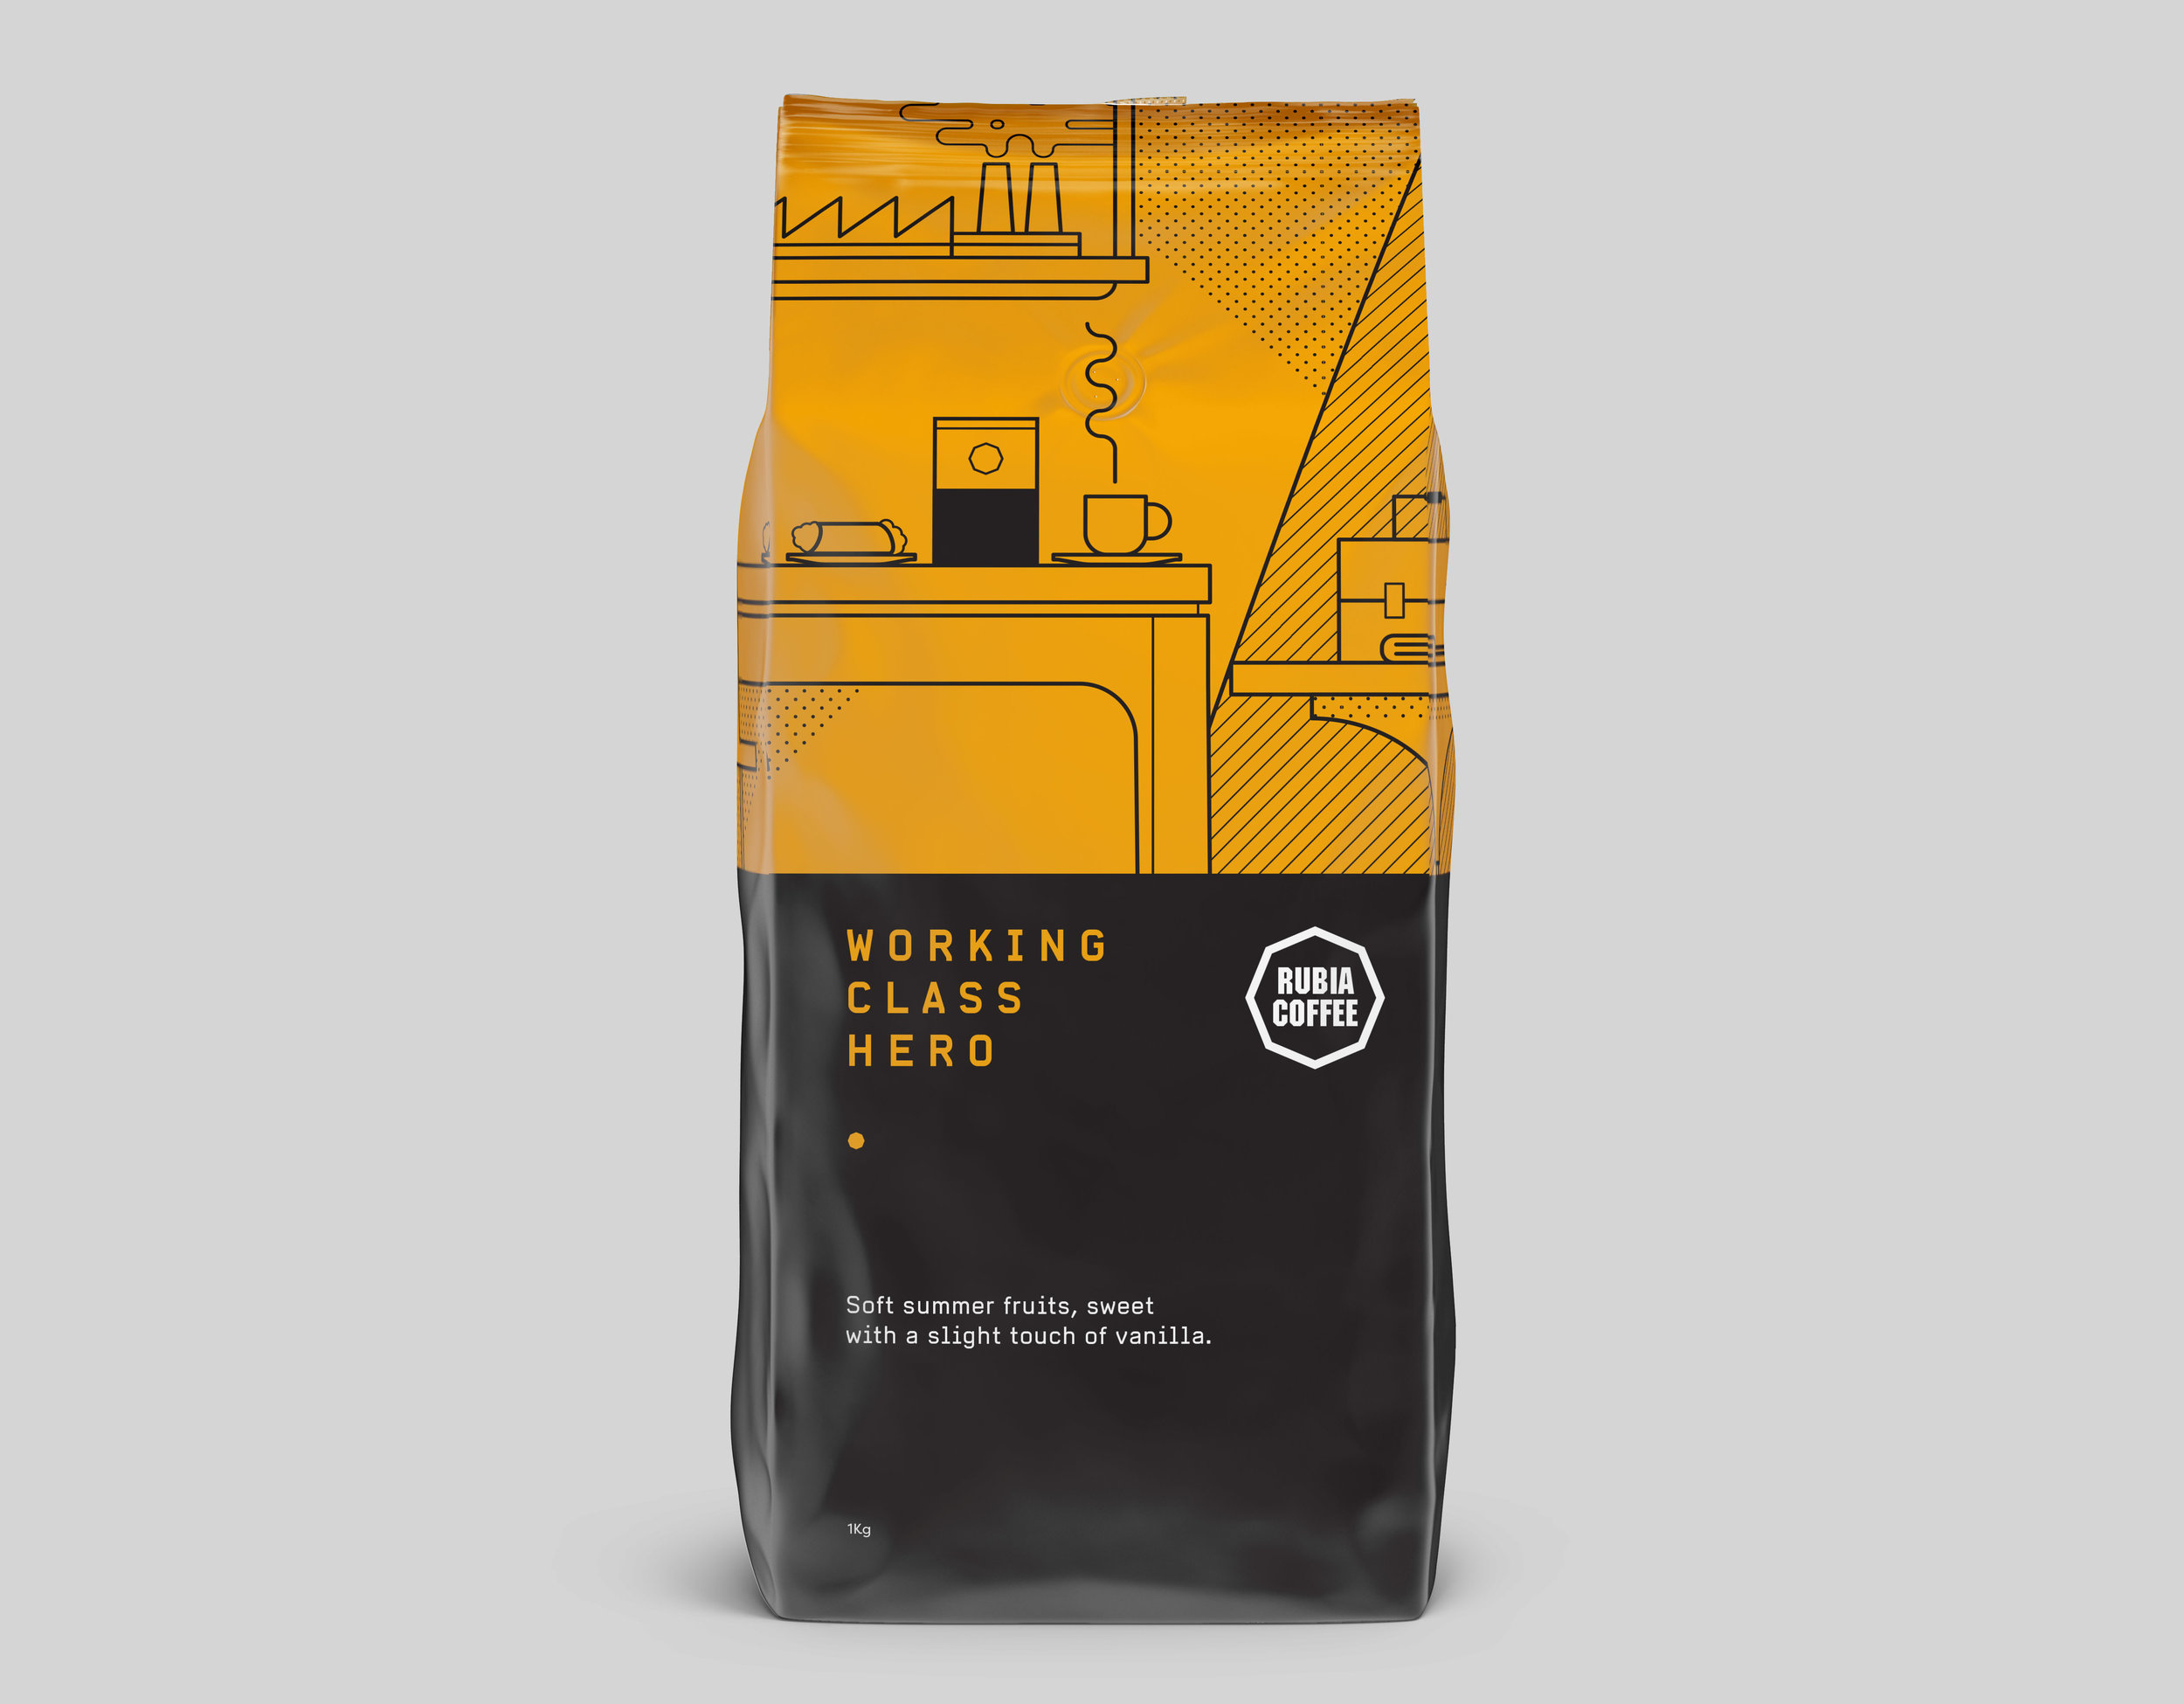 Rubia Coffee Working Class Hero packaging and illustration Graphic design melbourne branding melbourne branding design packaging design melbourne design studio melbourne graphic design